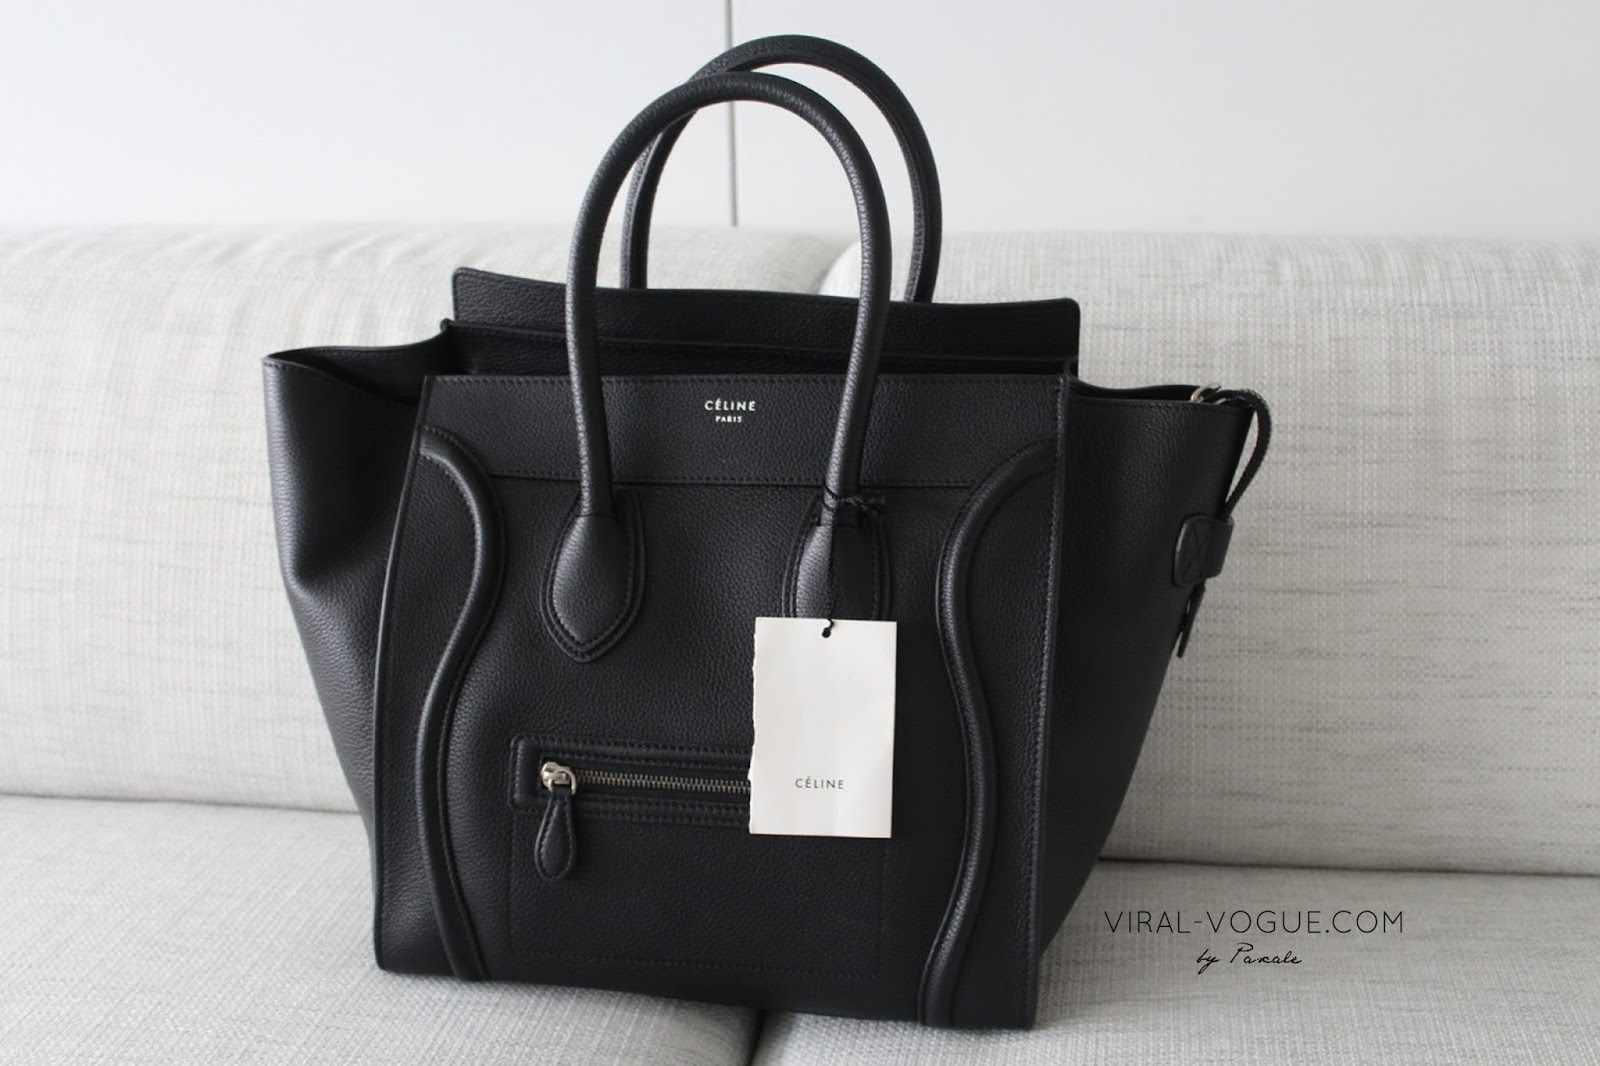 celine pink luggage tote - VIRAL-VOGUE: C��line Luggage comparison \u0026amp; review (C��line Mini X ...